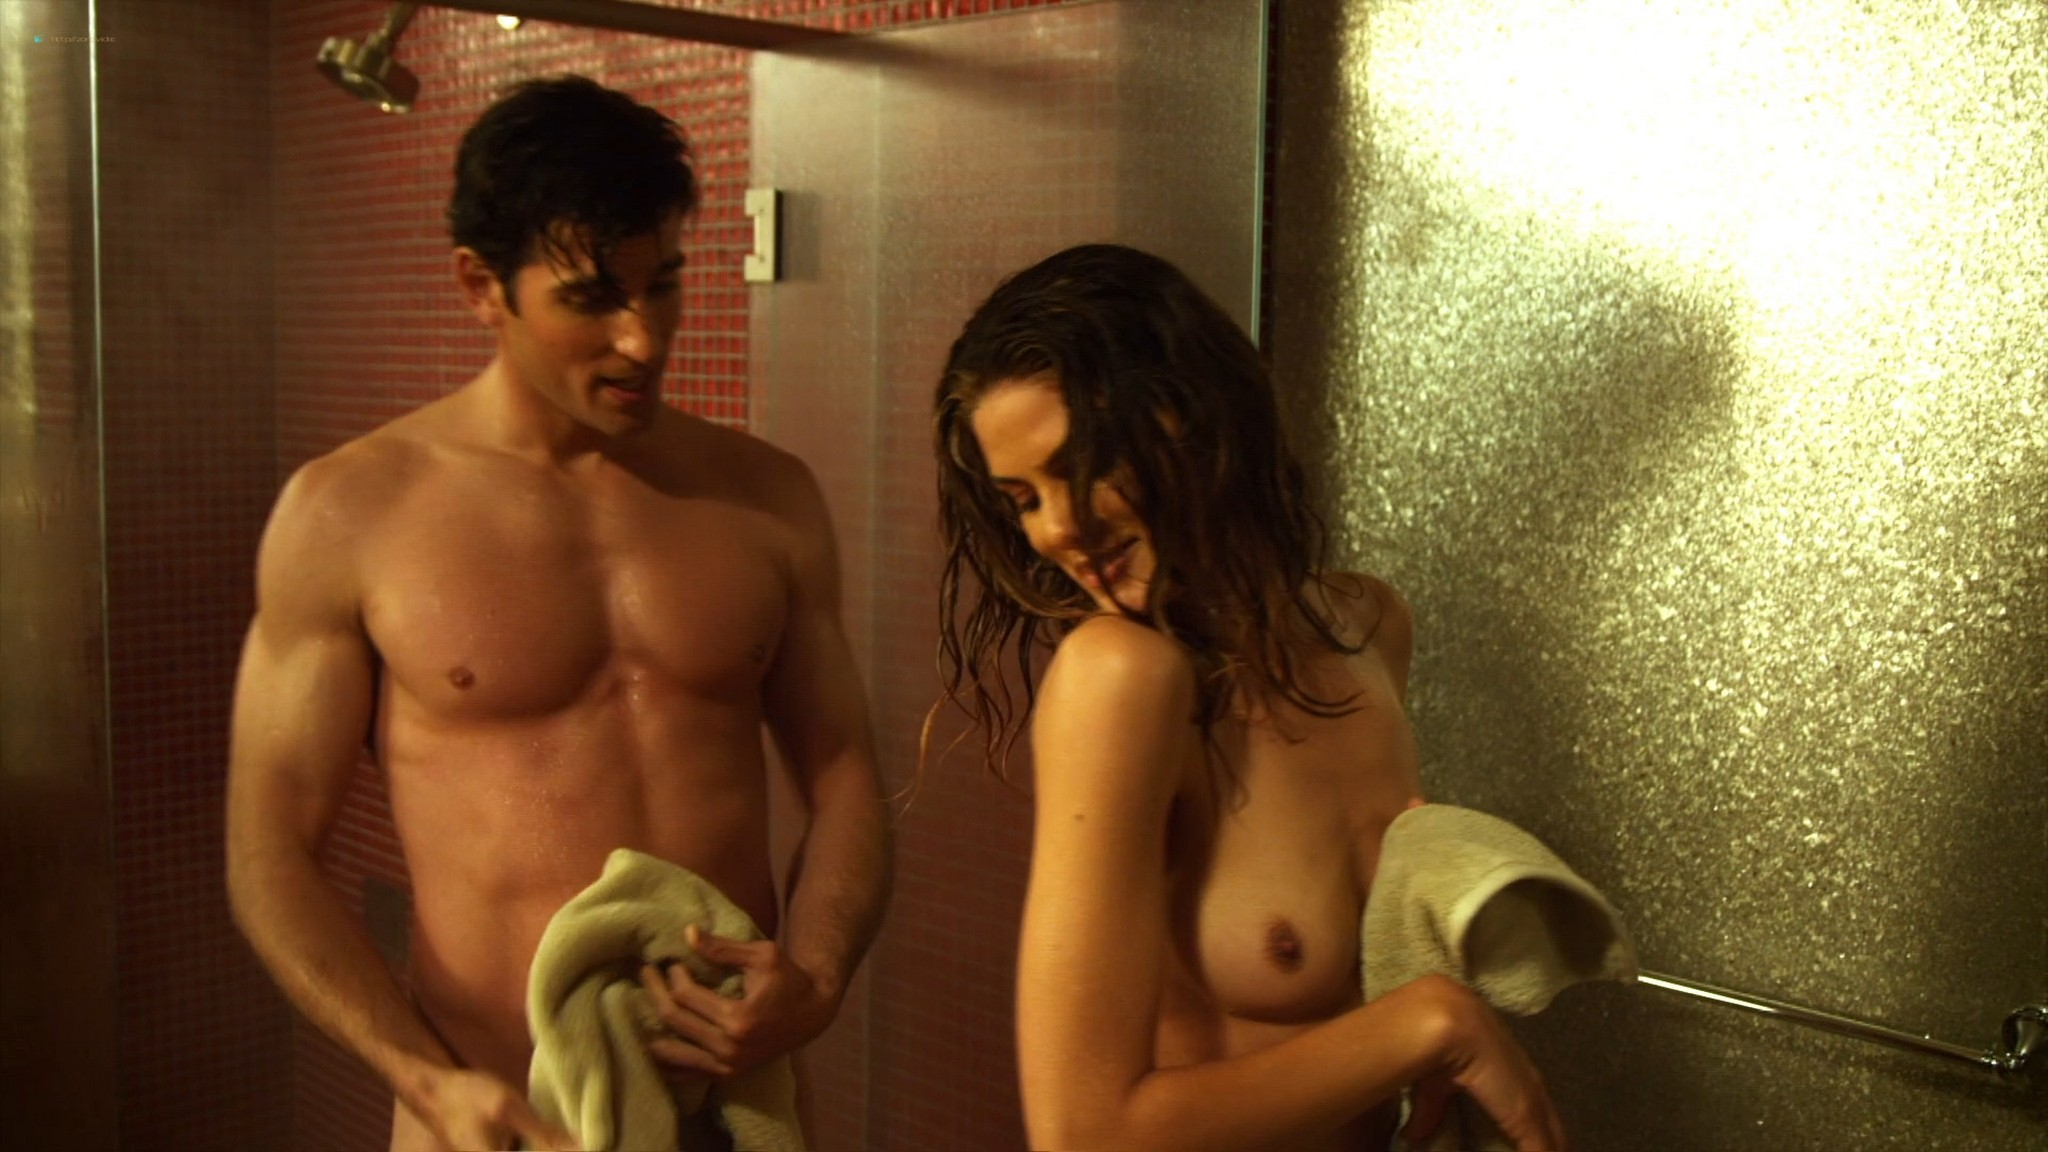 Ana Alexander nude sex Ragan Brooks naked in the shower - Chemistry (2011) s1e5 HD 1080p (11)